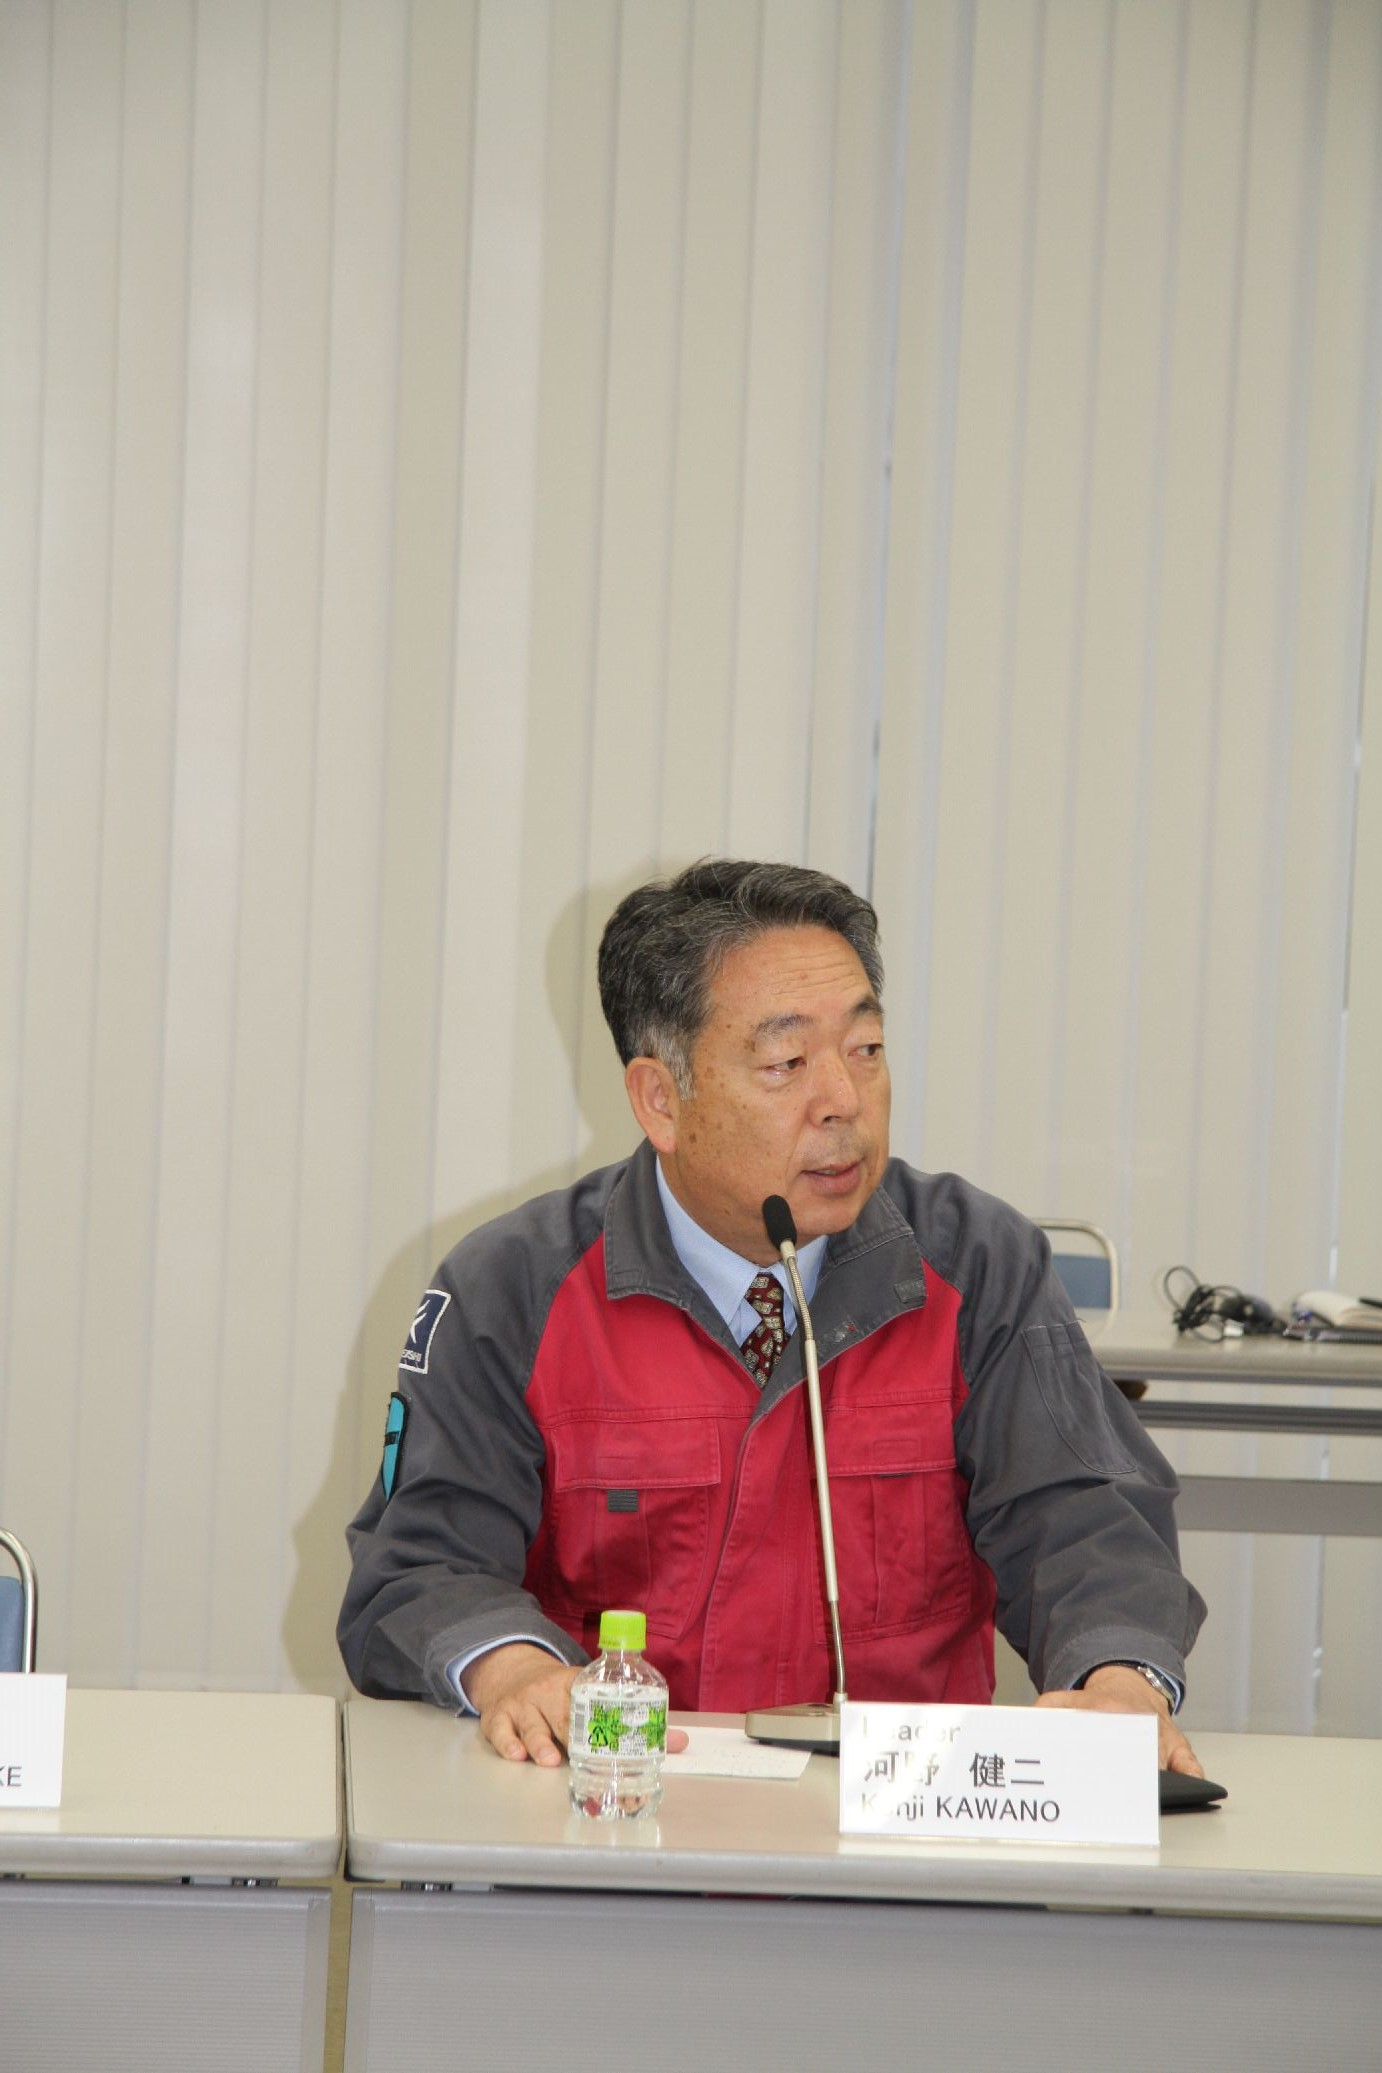 Speech from President Kenji Kawano of TSUNEISHI